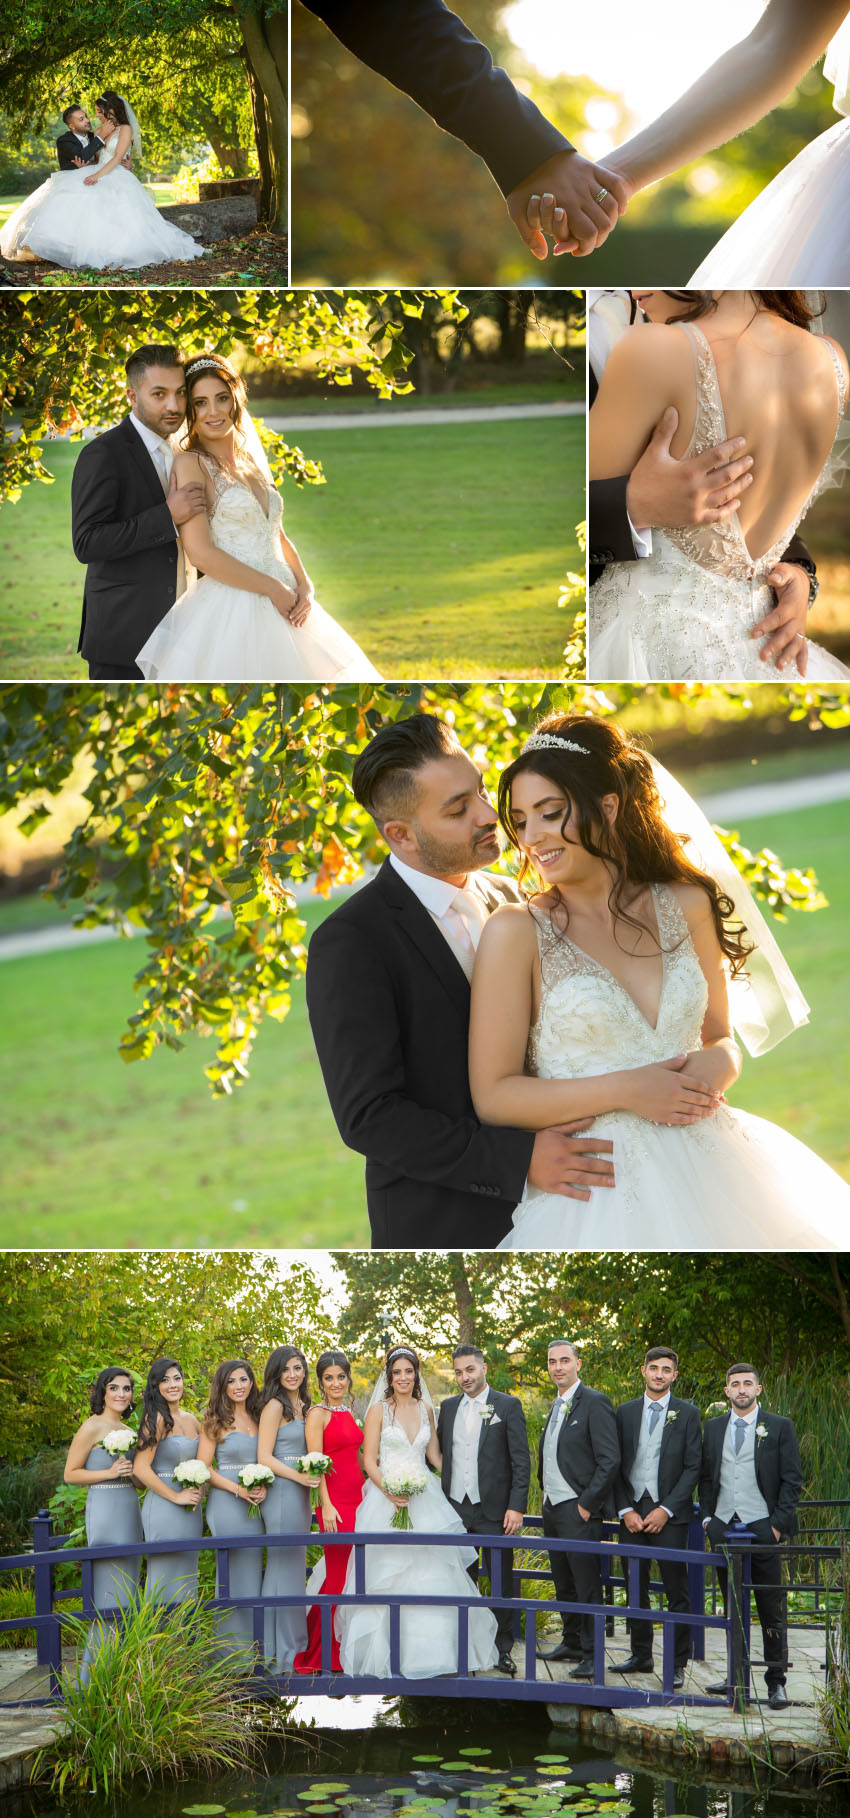 15_Wedding photography at Sopwell House